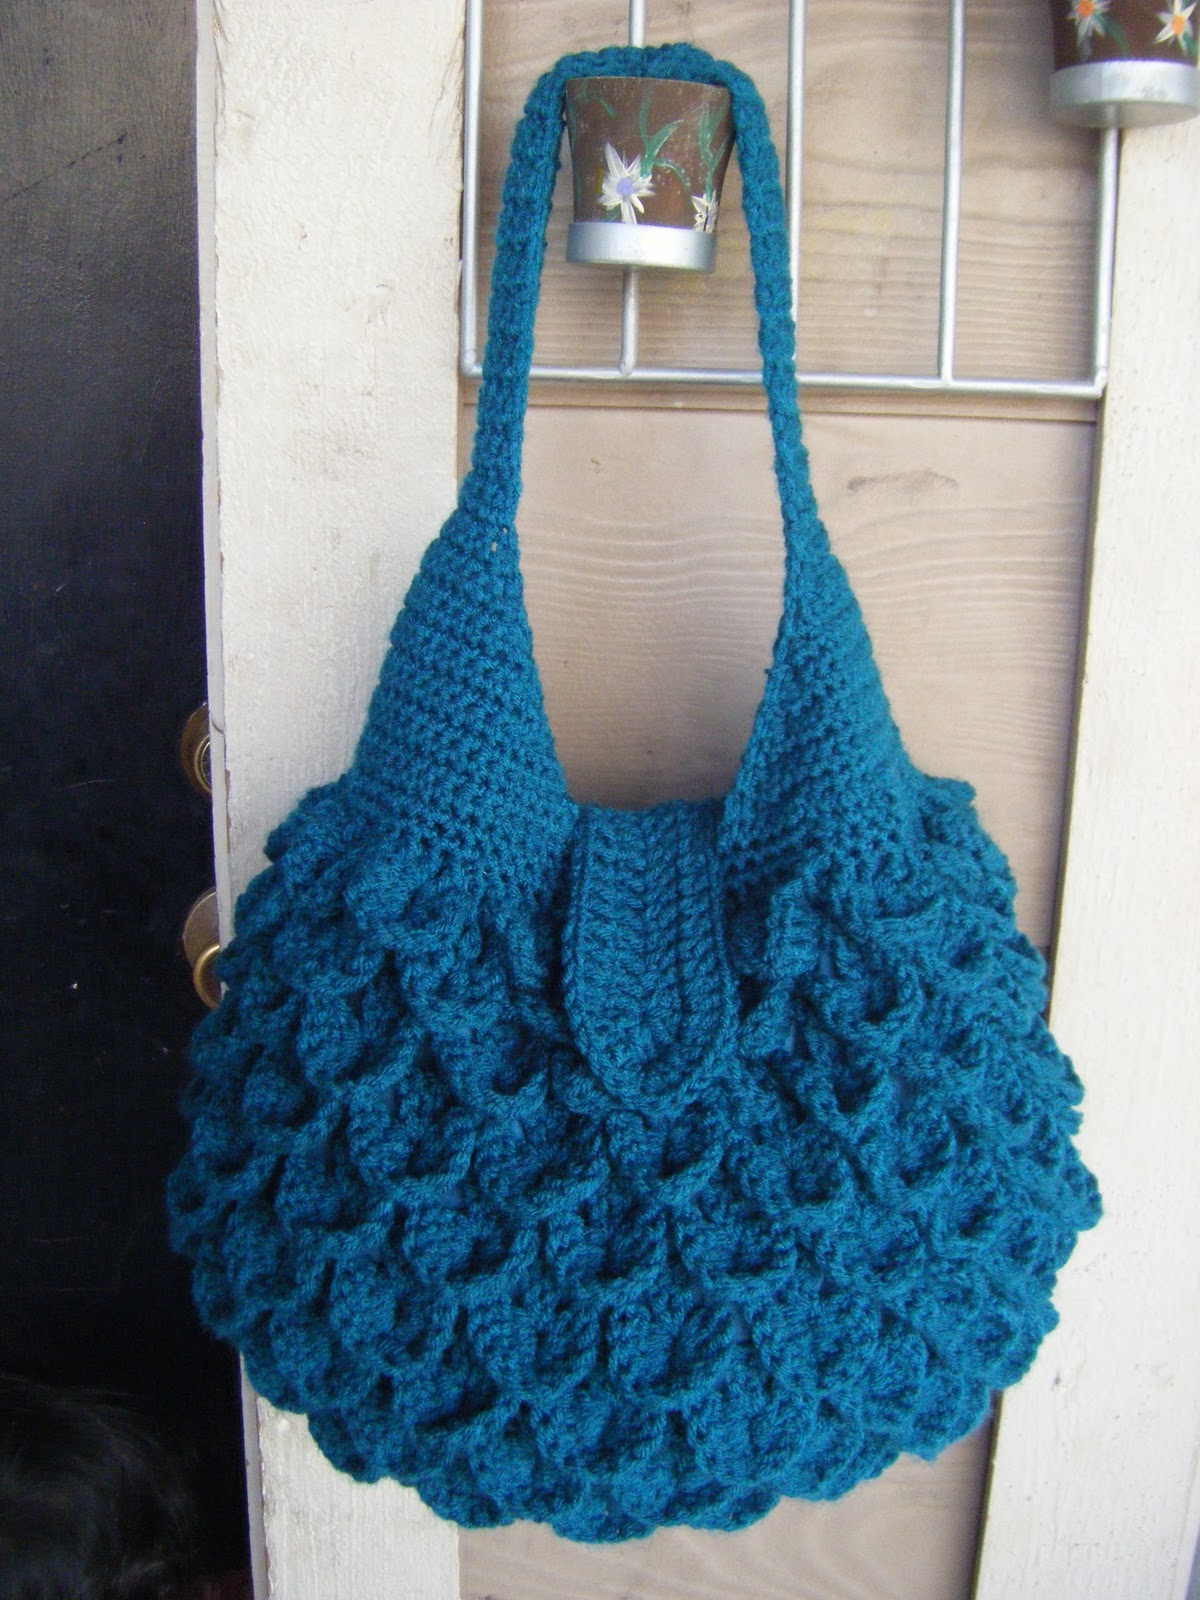 Free Hobo Purse Pattern : Hip Hobo Bag - Christmas Crafts, Free Knitting Patterns, Free